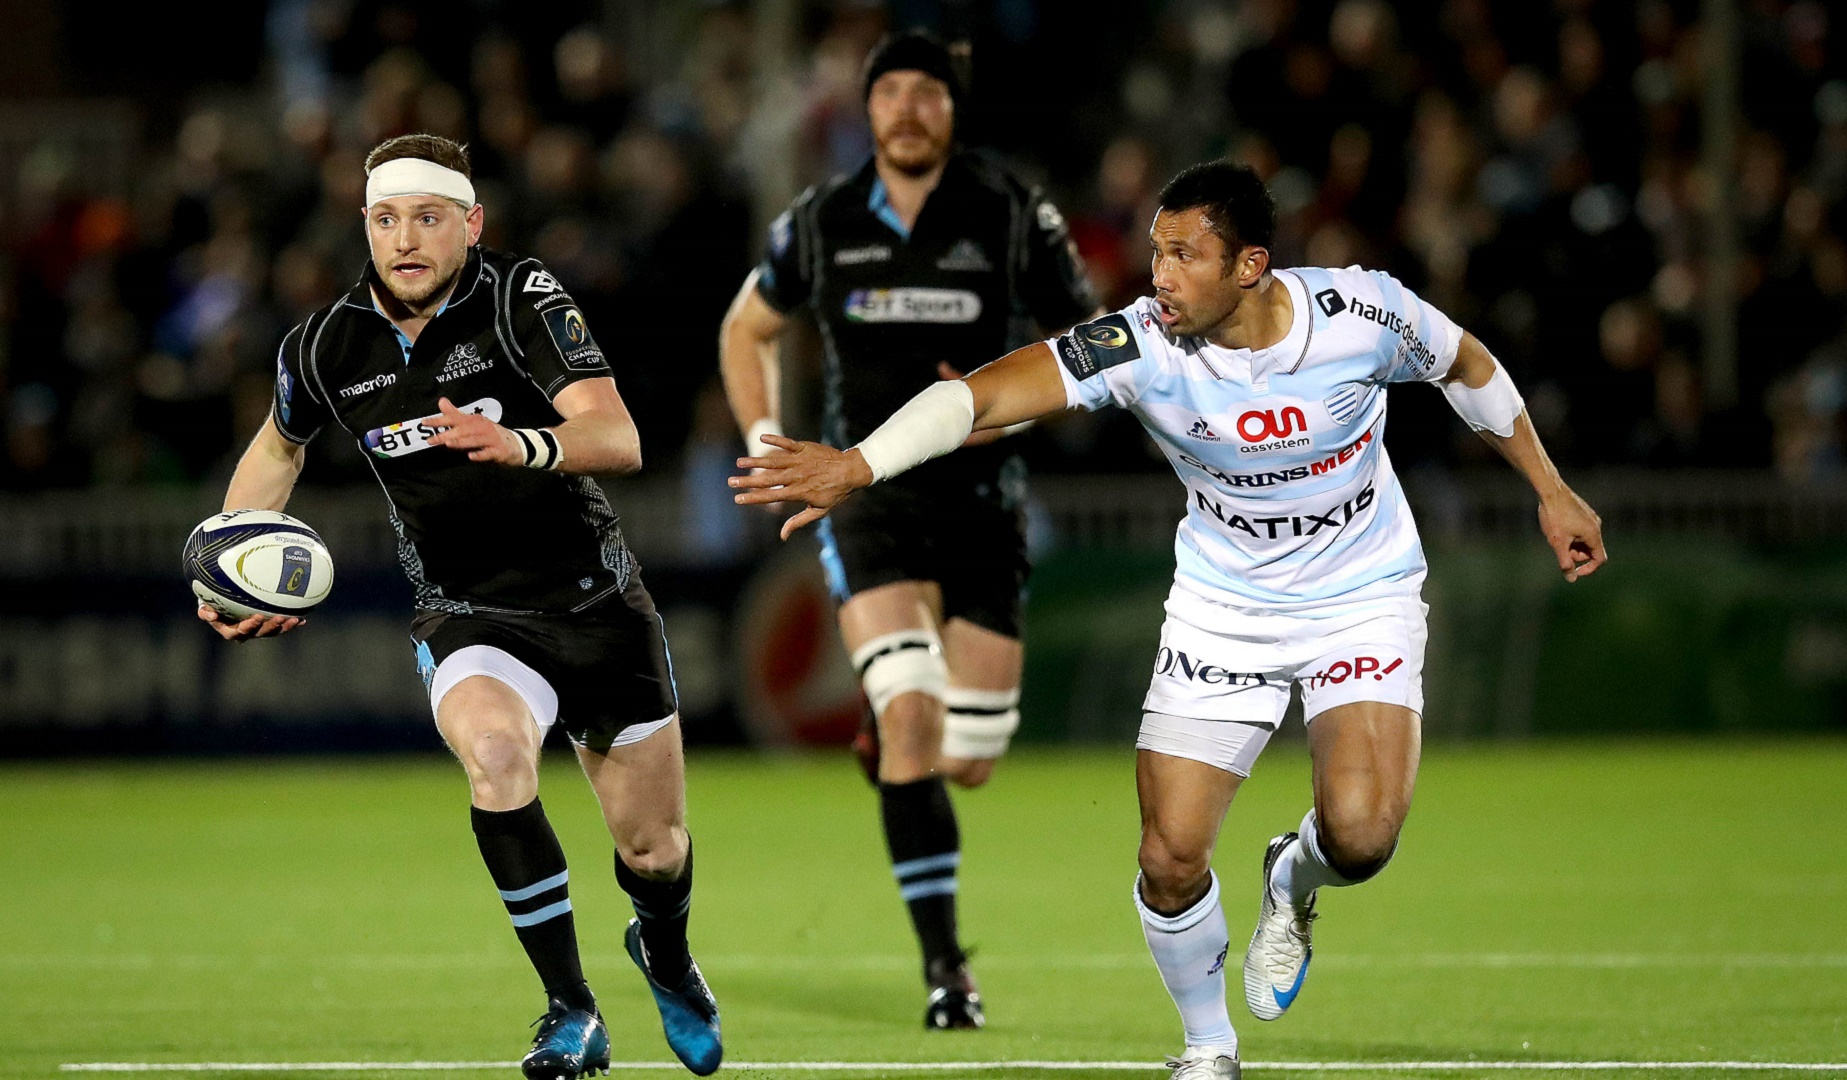 LionsWatch: Russell runs the show for rampant Warriors at Scotstoun